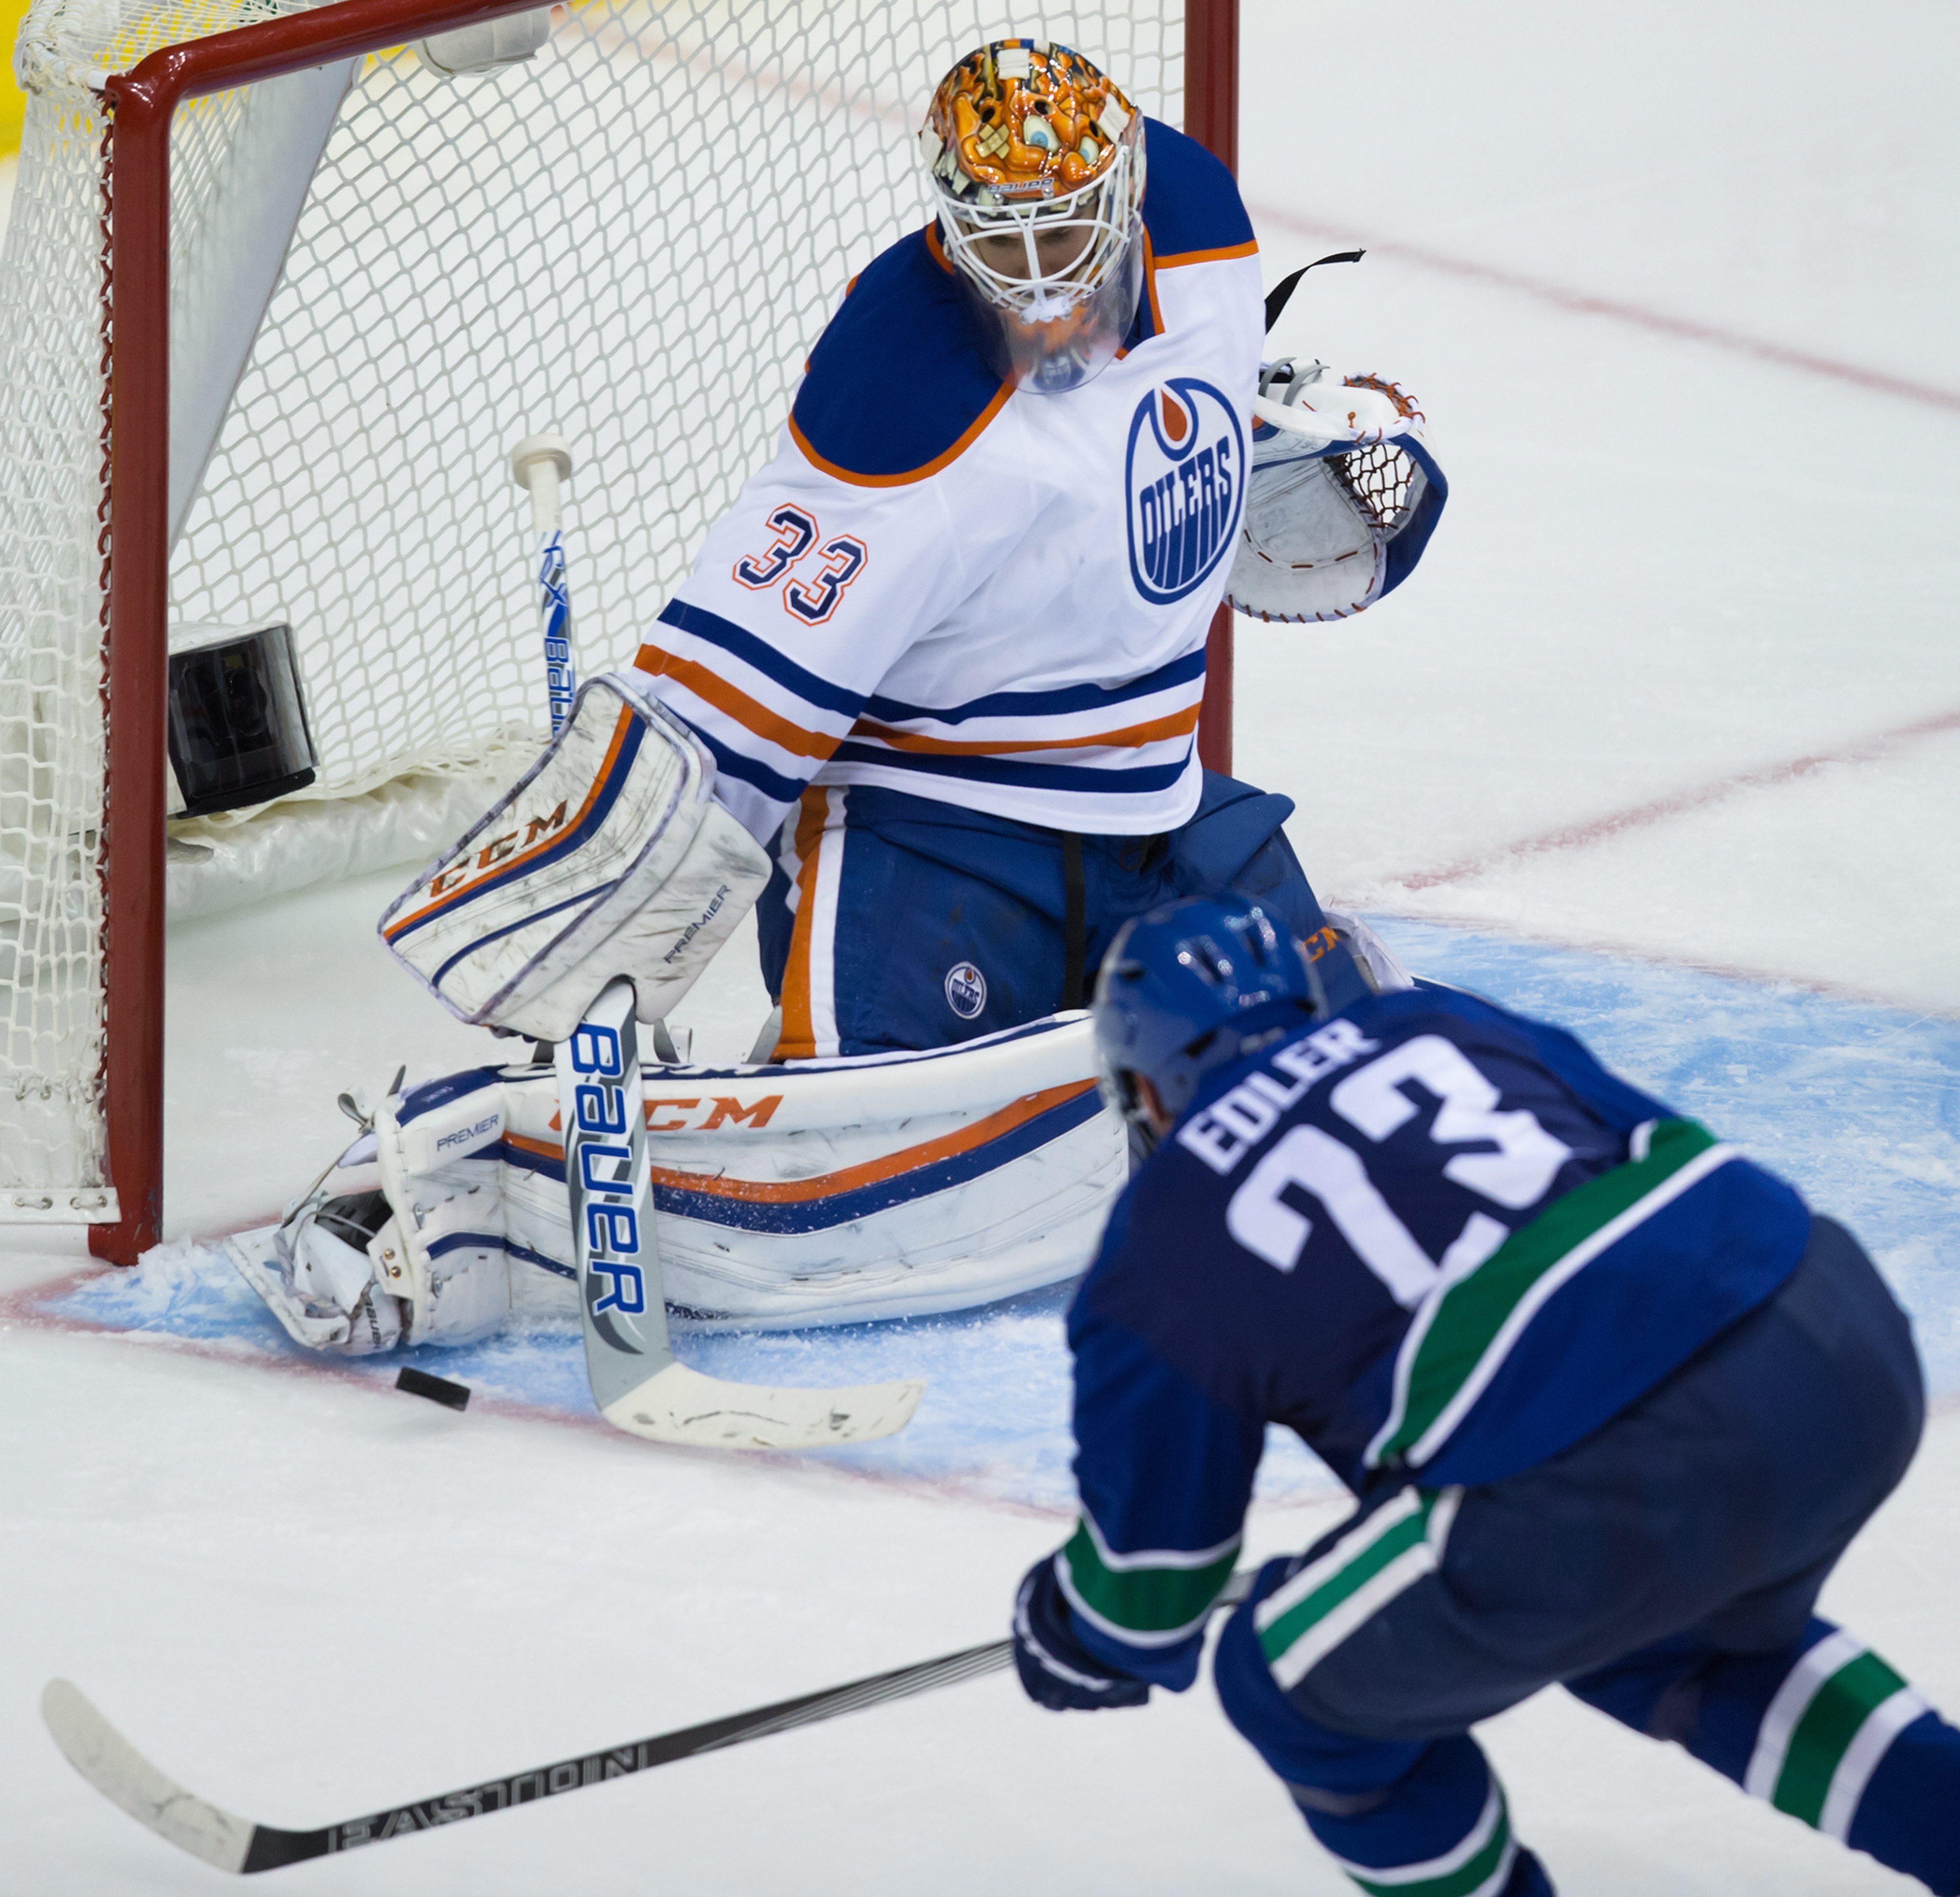 Edmonton Oilers goalie Cam Talbot stops Vancouver Canucks' Alexander Edler, of Sweden, during the third period of a preseason NHL hockey game in Vancouver, British Columbia, Saturday, Oct. 3, 2015. (Darryl Dyck/The Canadian Press via AP) MANDATORY CREDIT